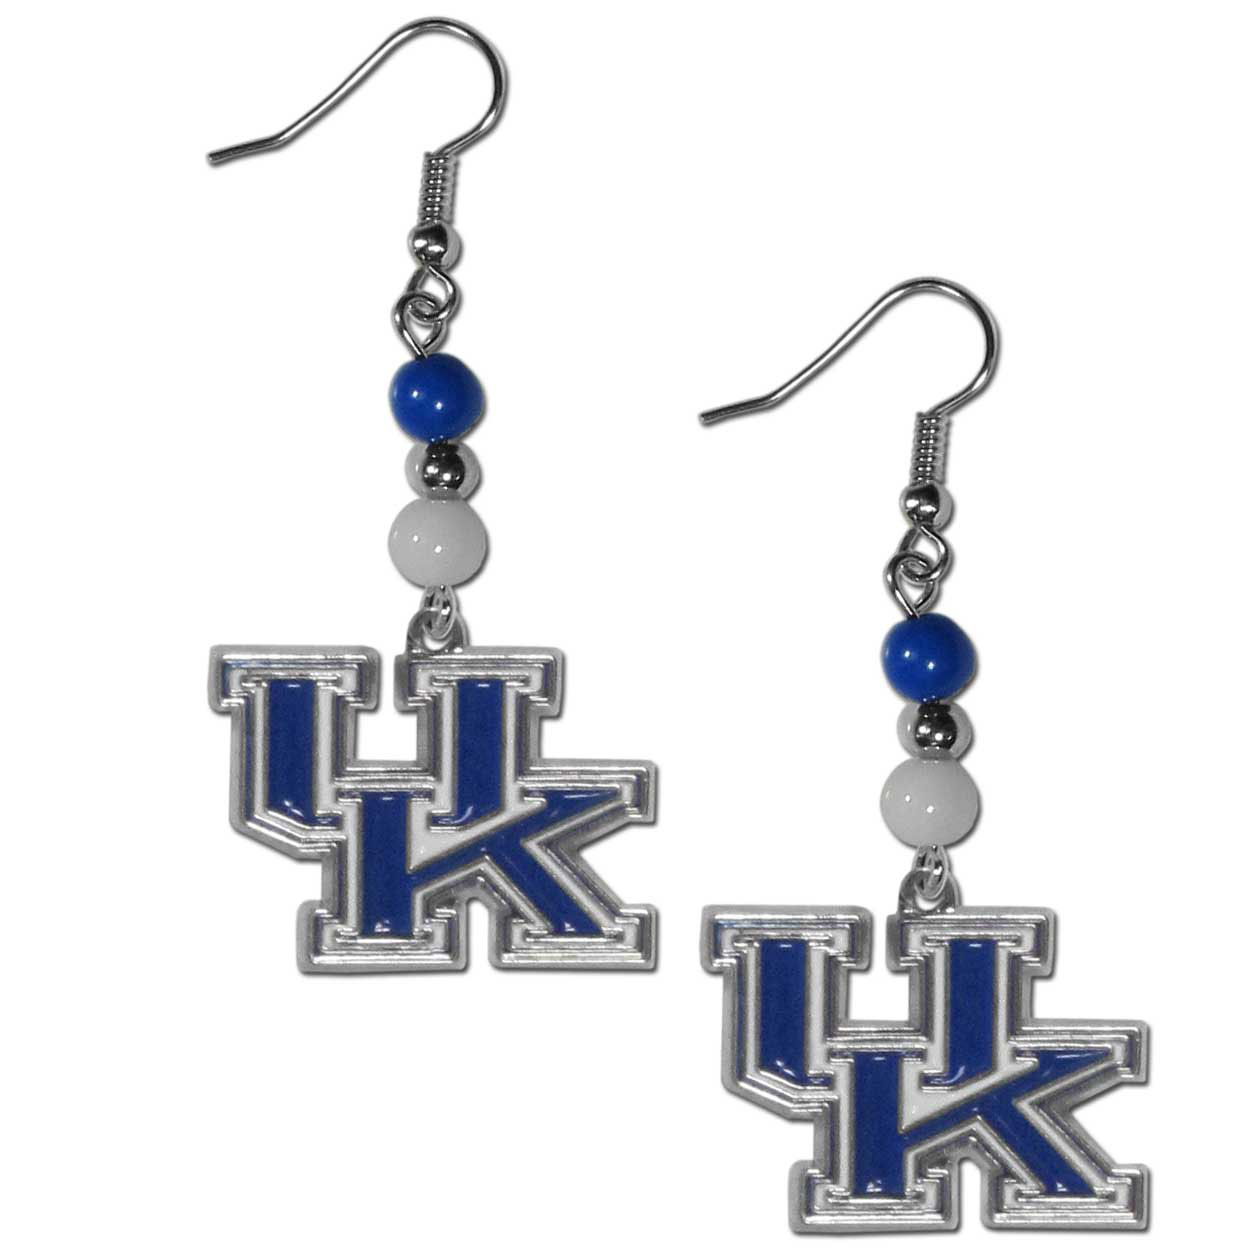 Kentucky Wildcats Fan Bead Dangle Earrings - Love your team, show it off with our Kentucky Wildcats bead dangle earrings! These super cute earrings hang approximately 2 inches and features 2 team colored beads and a high polish team charm. A must have for game day!